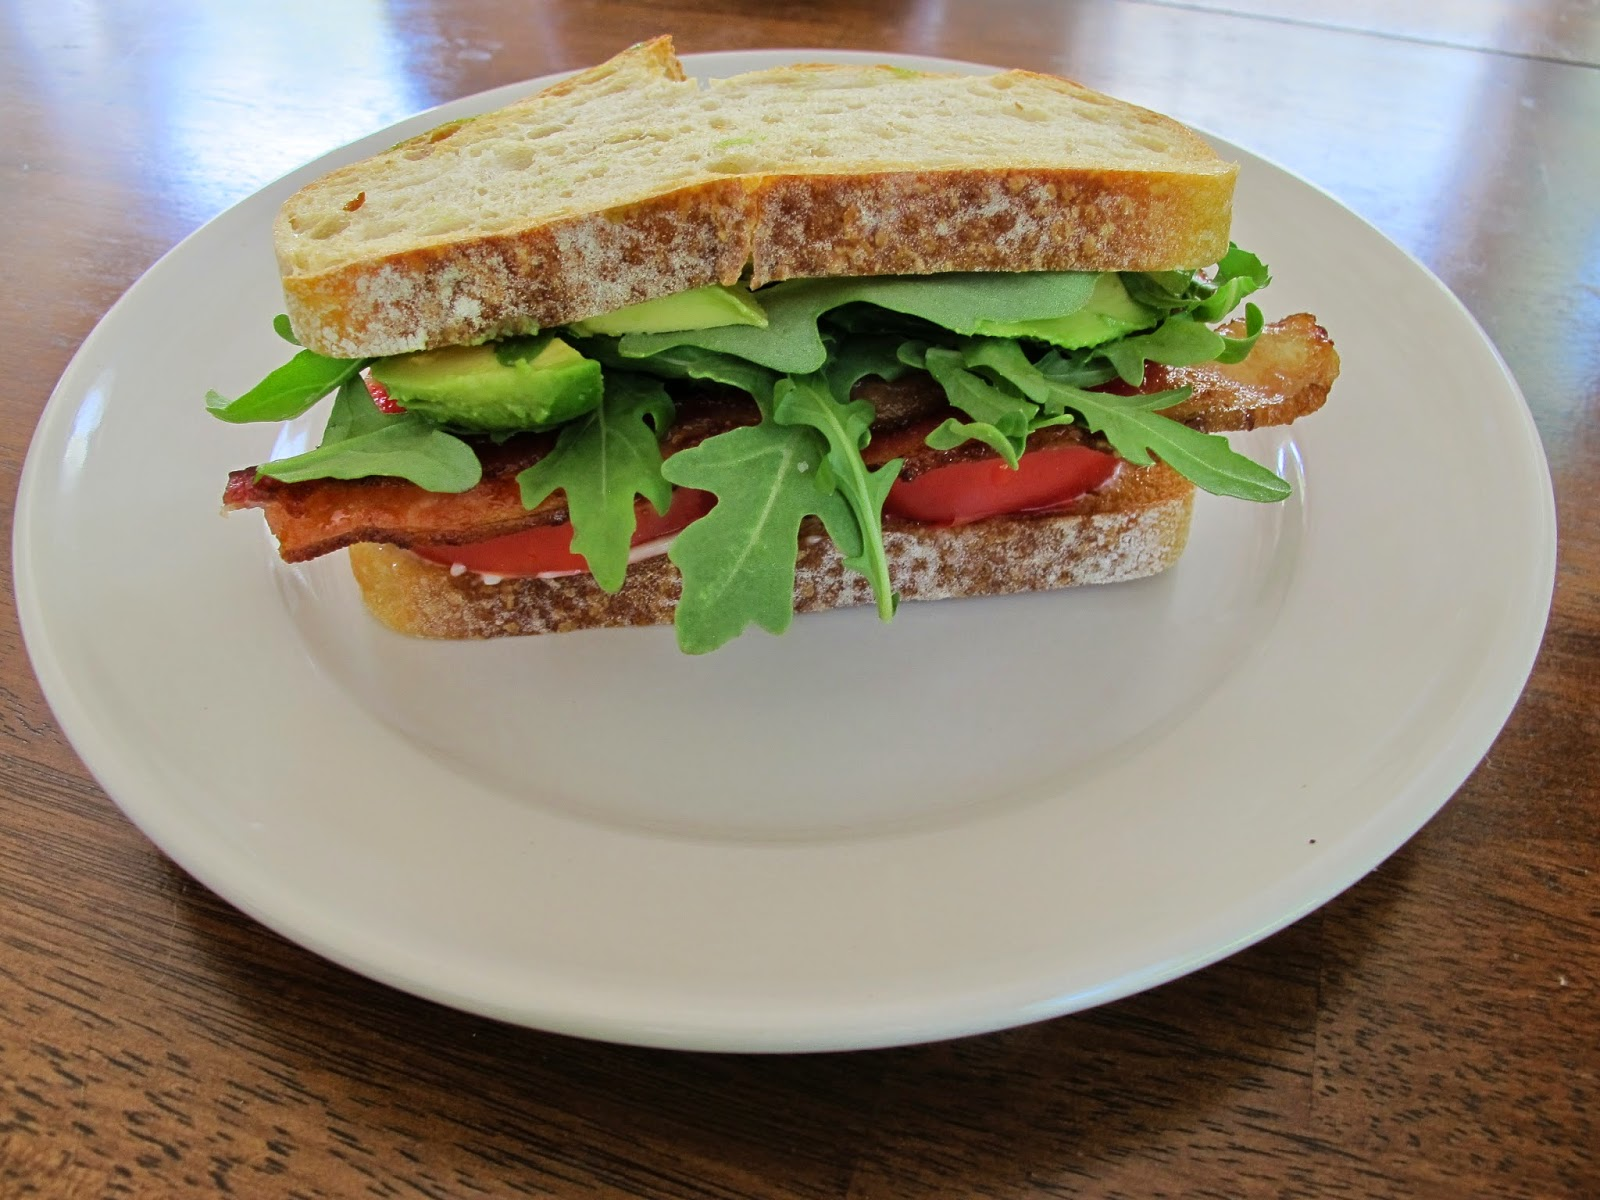 Heirloom Tomato BLT Sandwiches with Avocado